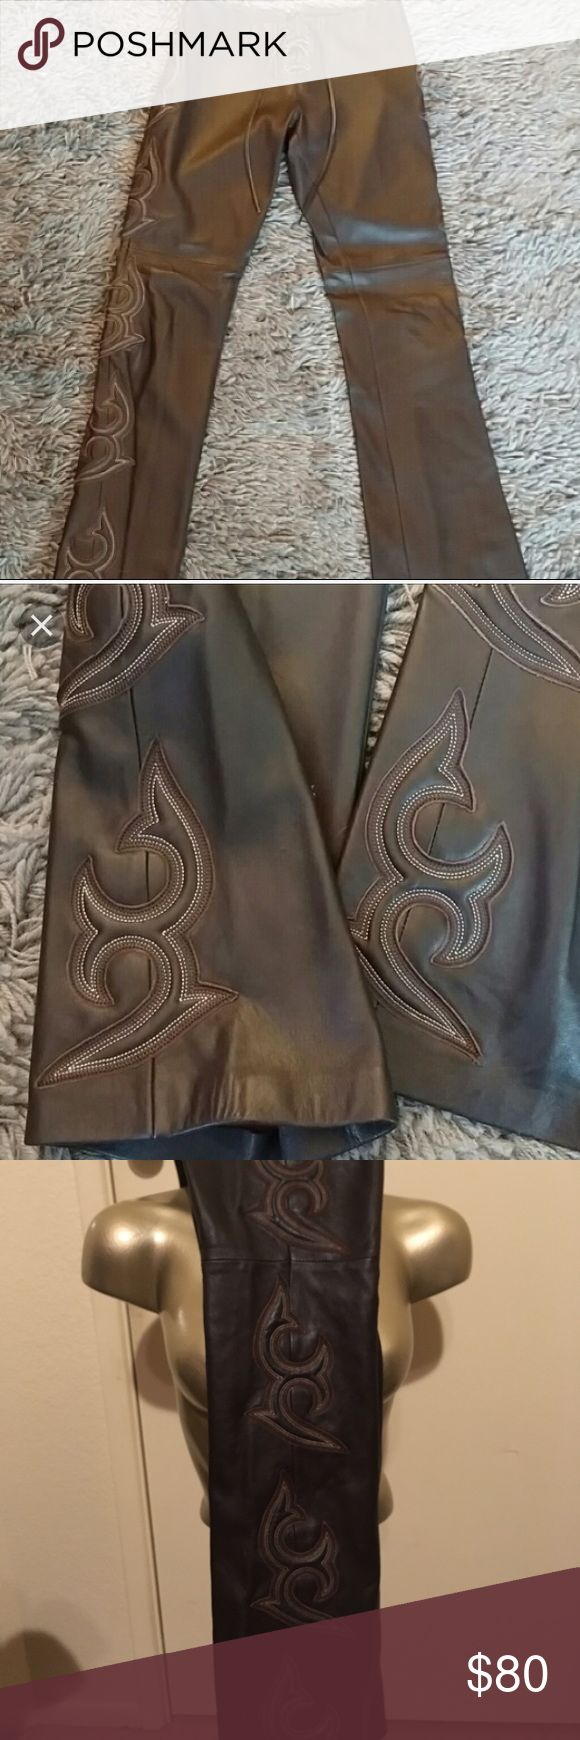 Bebe brown lamb skin tribal leather pants 0 XS Very good condition.  One mark small mark on the leather-see pics, could be hemmed again.  Size 0.  Low rise.  Zip back, lace up front.  Like brands seen in nasty gal, dolls kill bebe Pants Boot Cut & Flare